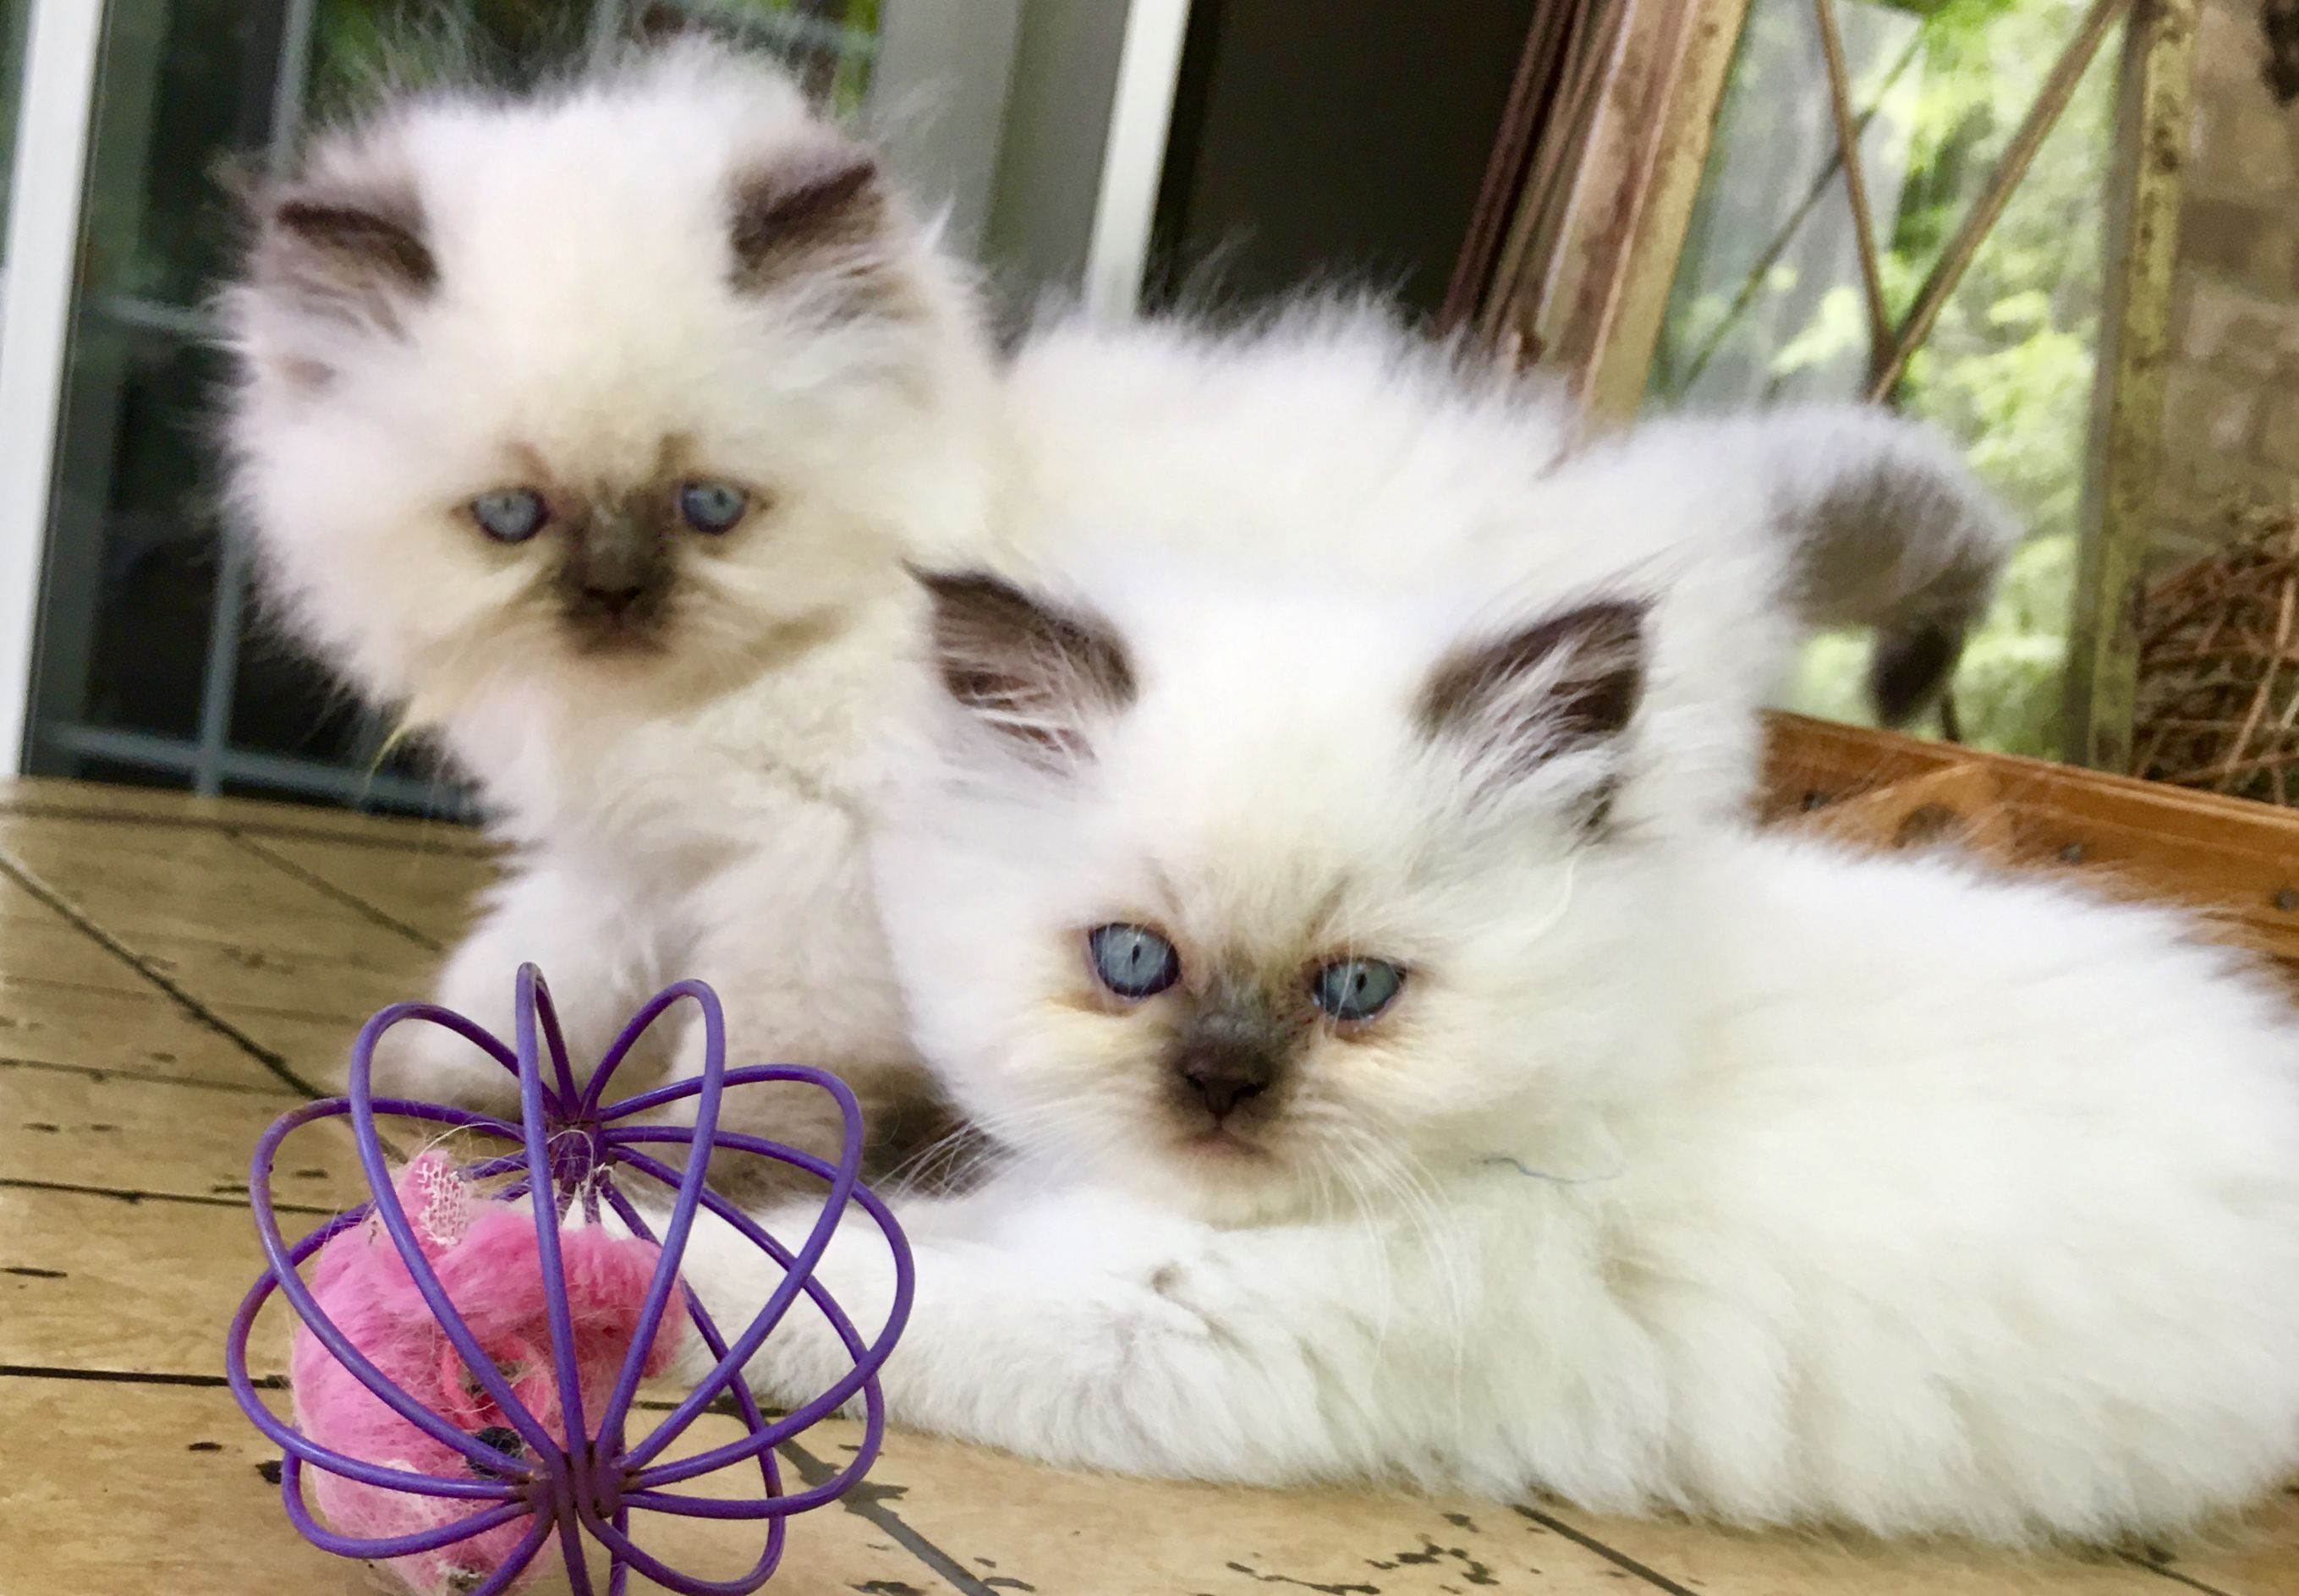 Powderpuff Persians Persian Kittens For Sale Persian Kittens Persian Kittens Cat Breeds Persian Cats For Sale